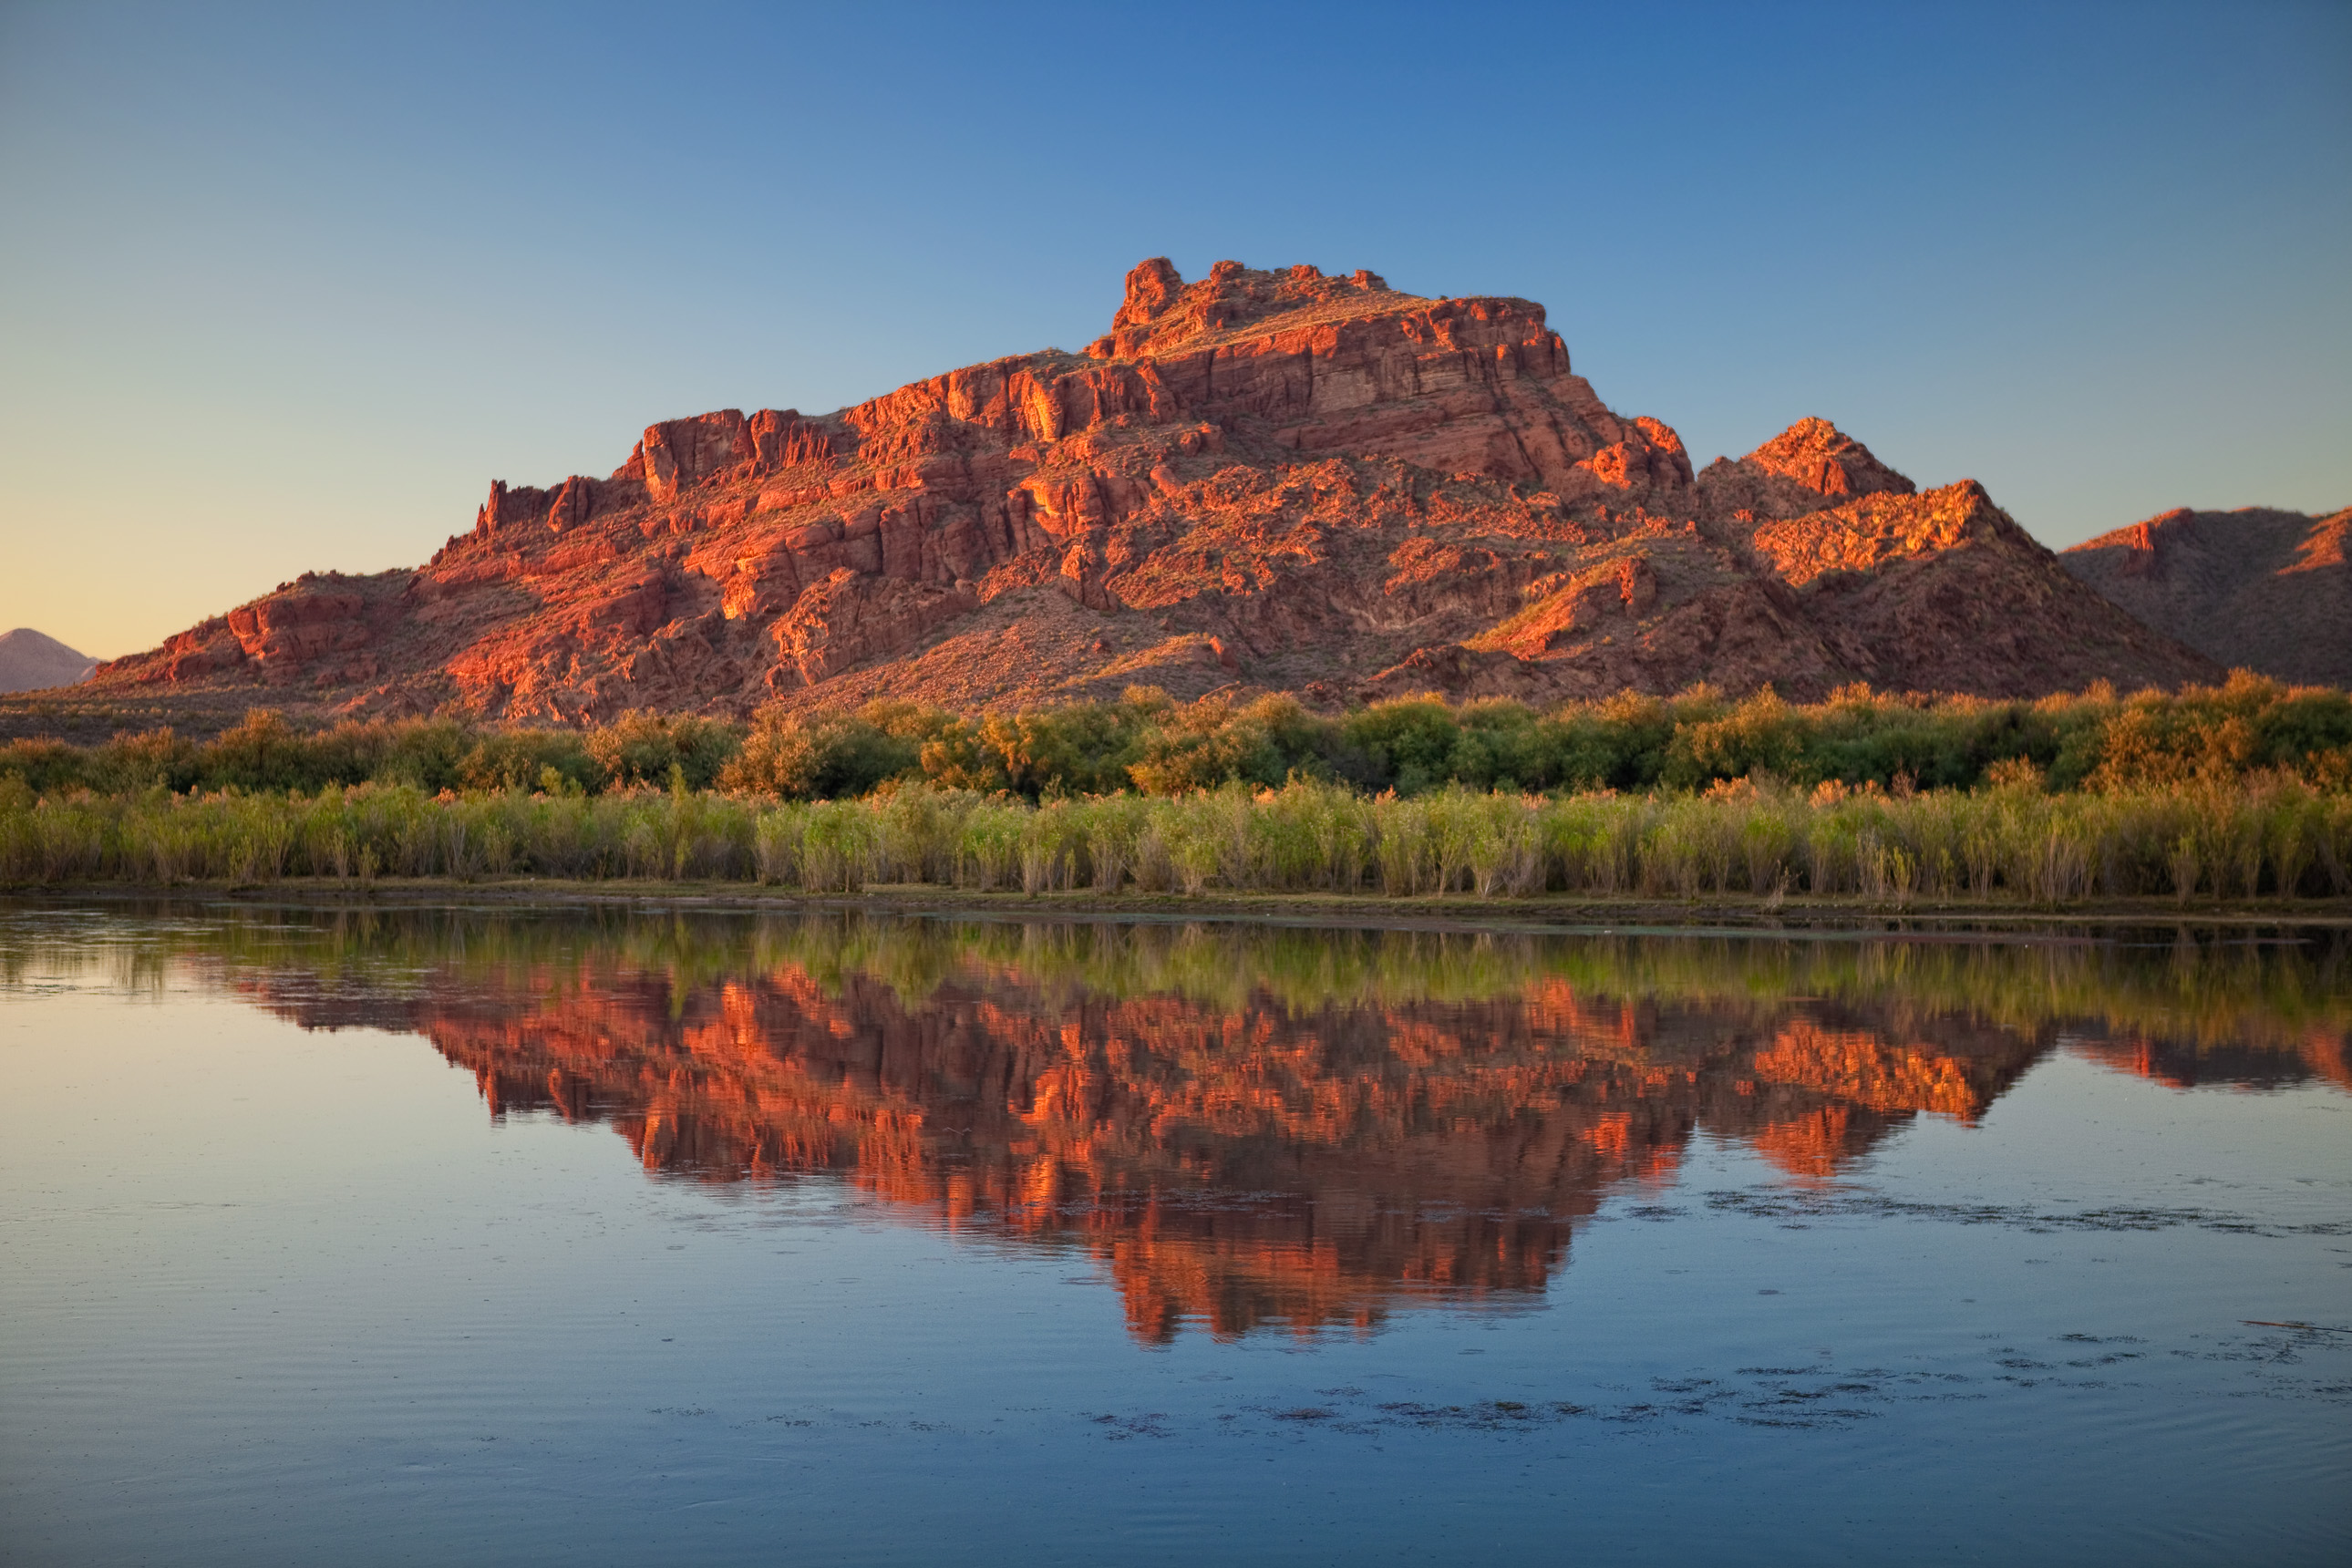 Red Mountain reflecting on the Salt River